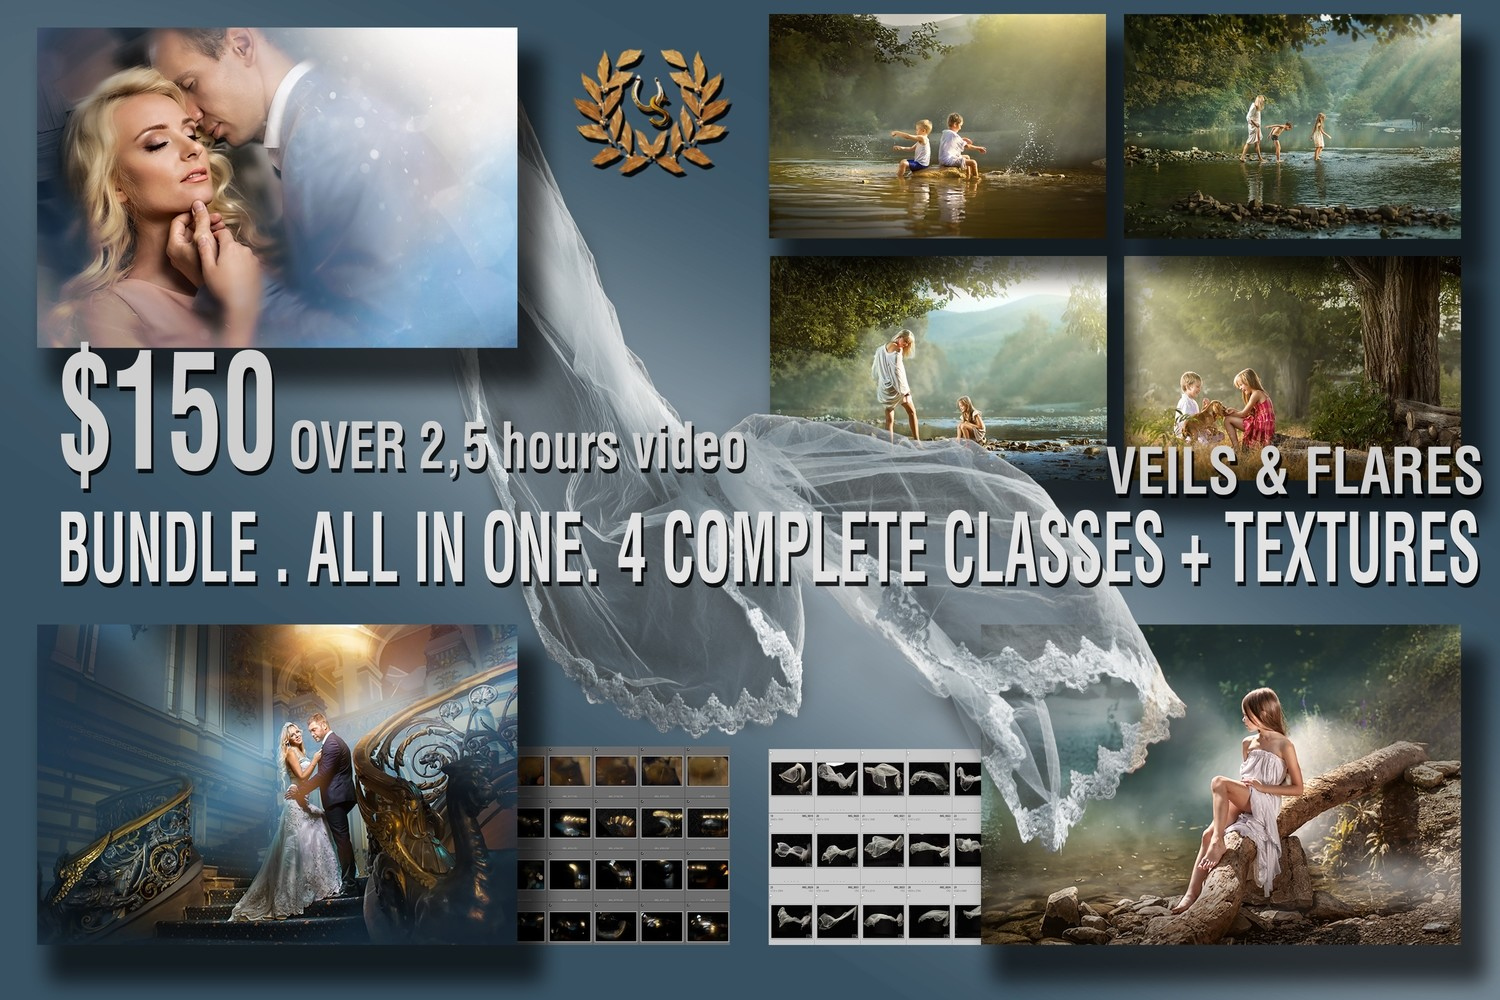 BUNDLE . ALL IN ONE. 10 COMPLETE CLASSES + TEXTURES